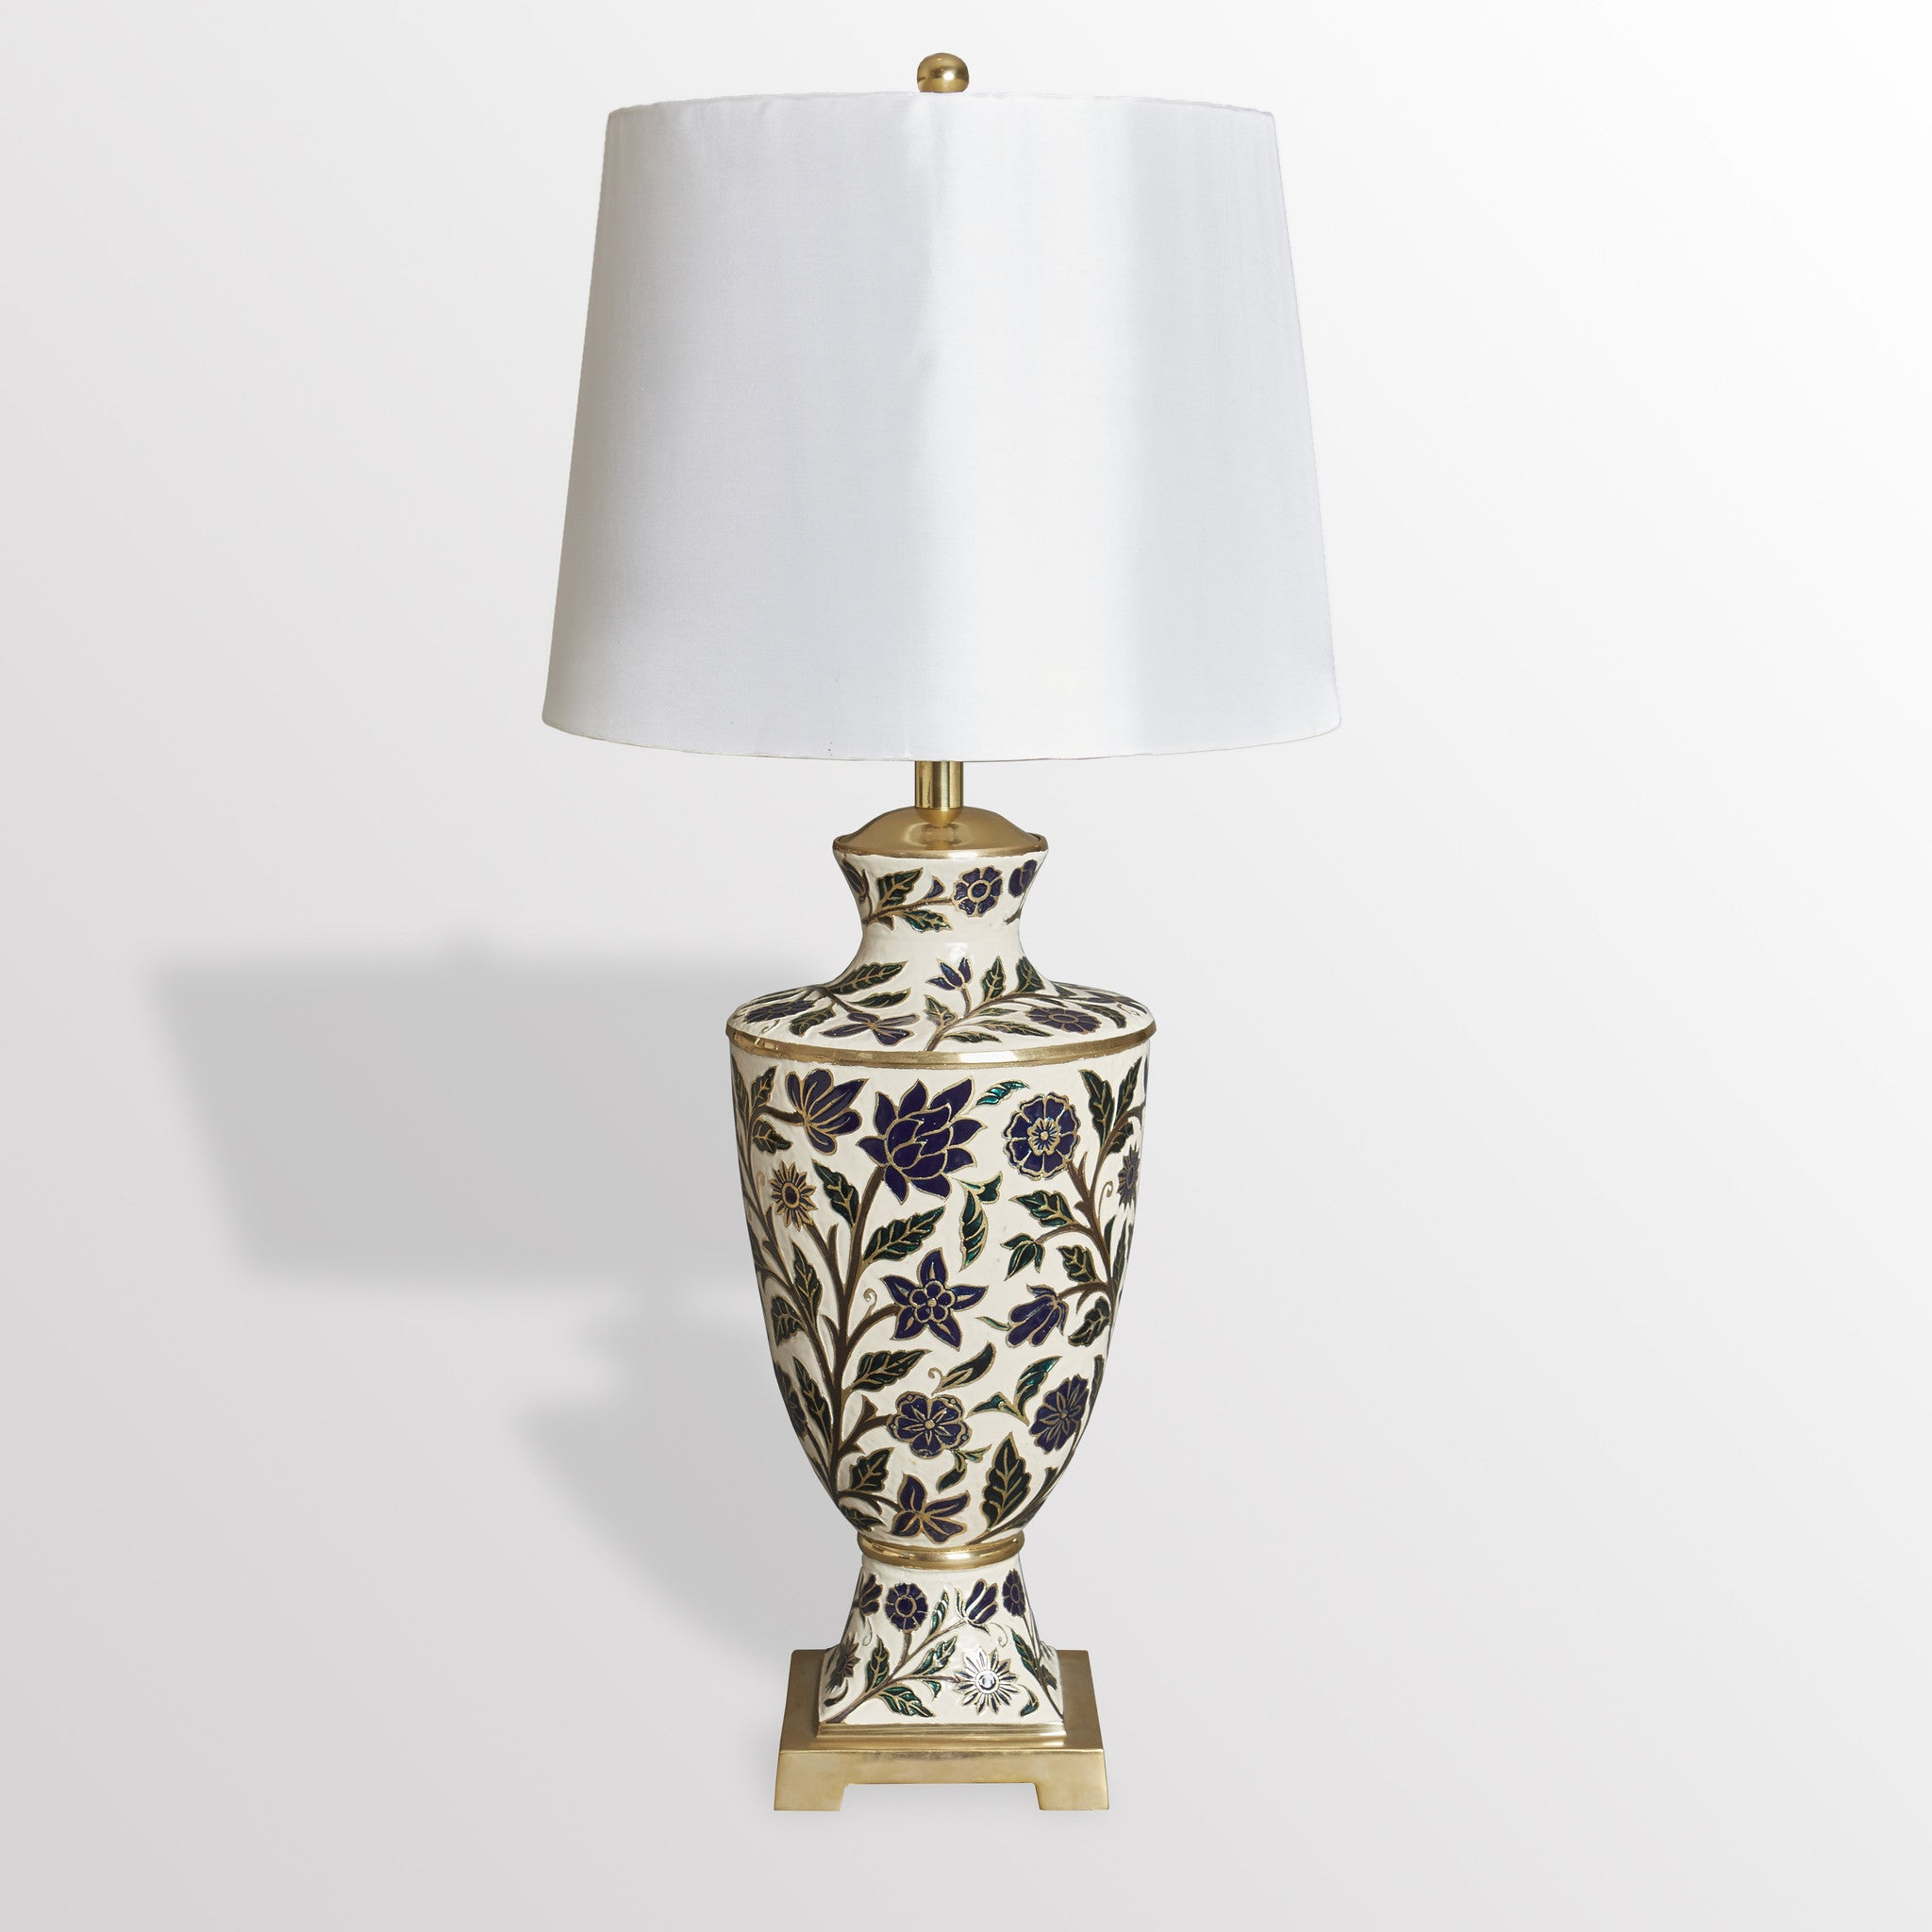 Ornamaya classic artisan table lamp sydney australia table ornamaya ishtar classic artisan table lamp geotapseo Image collections